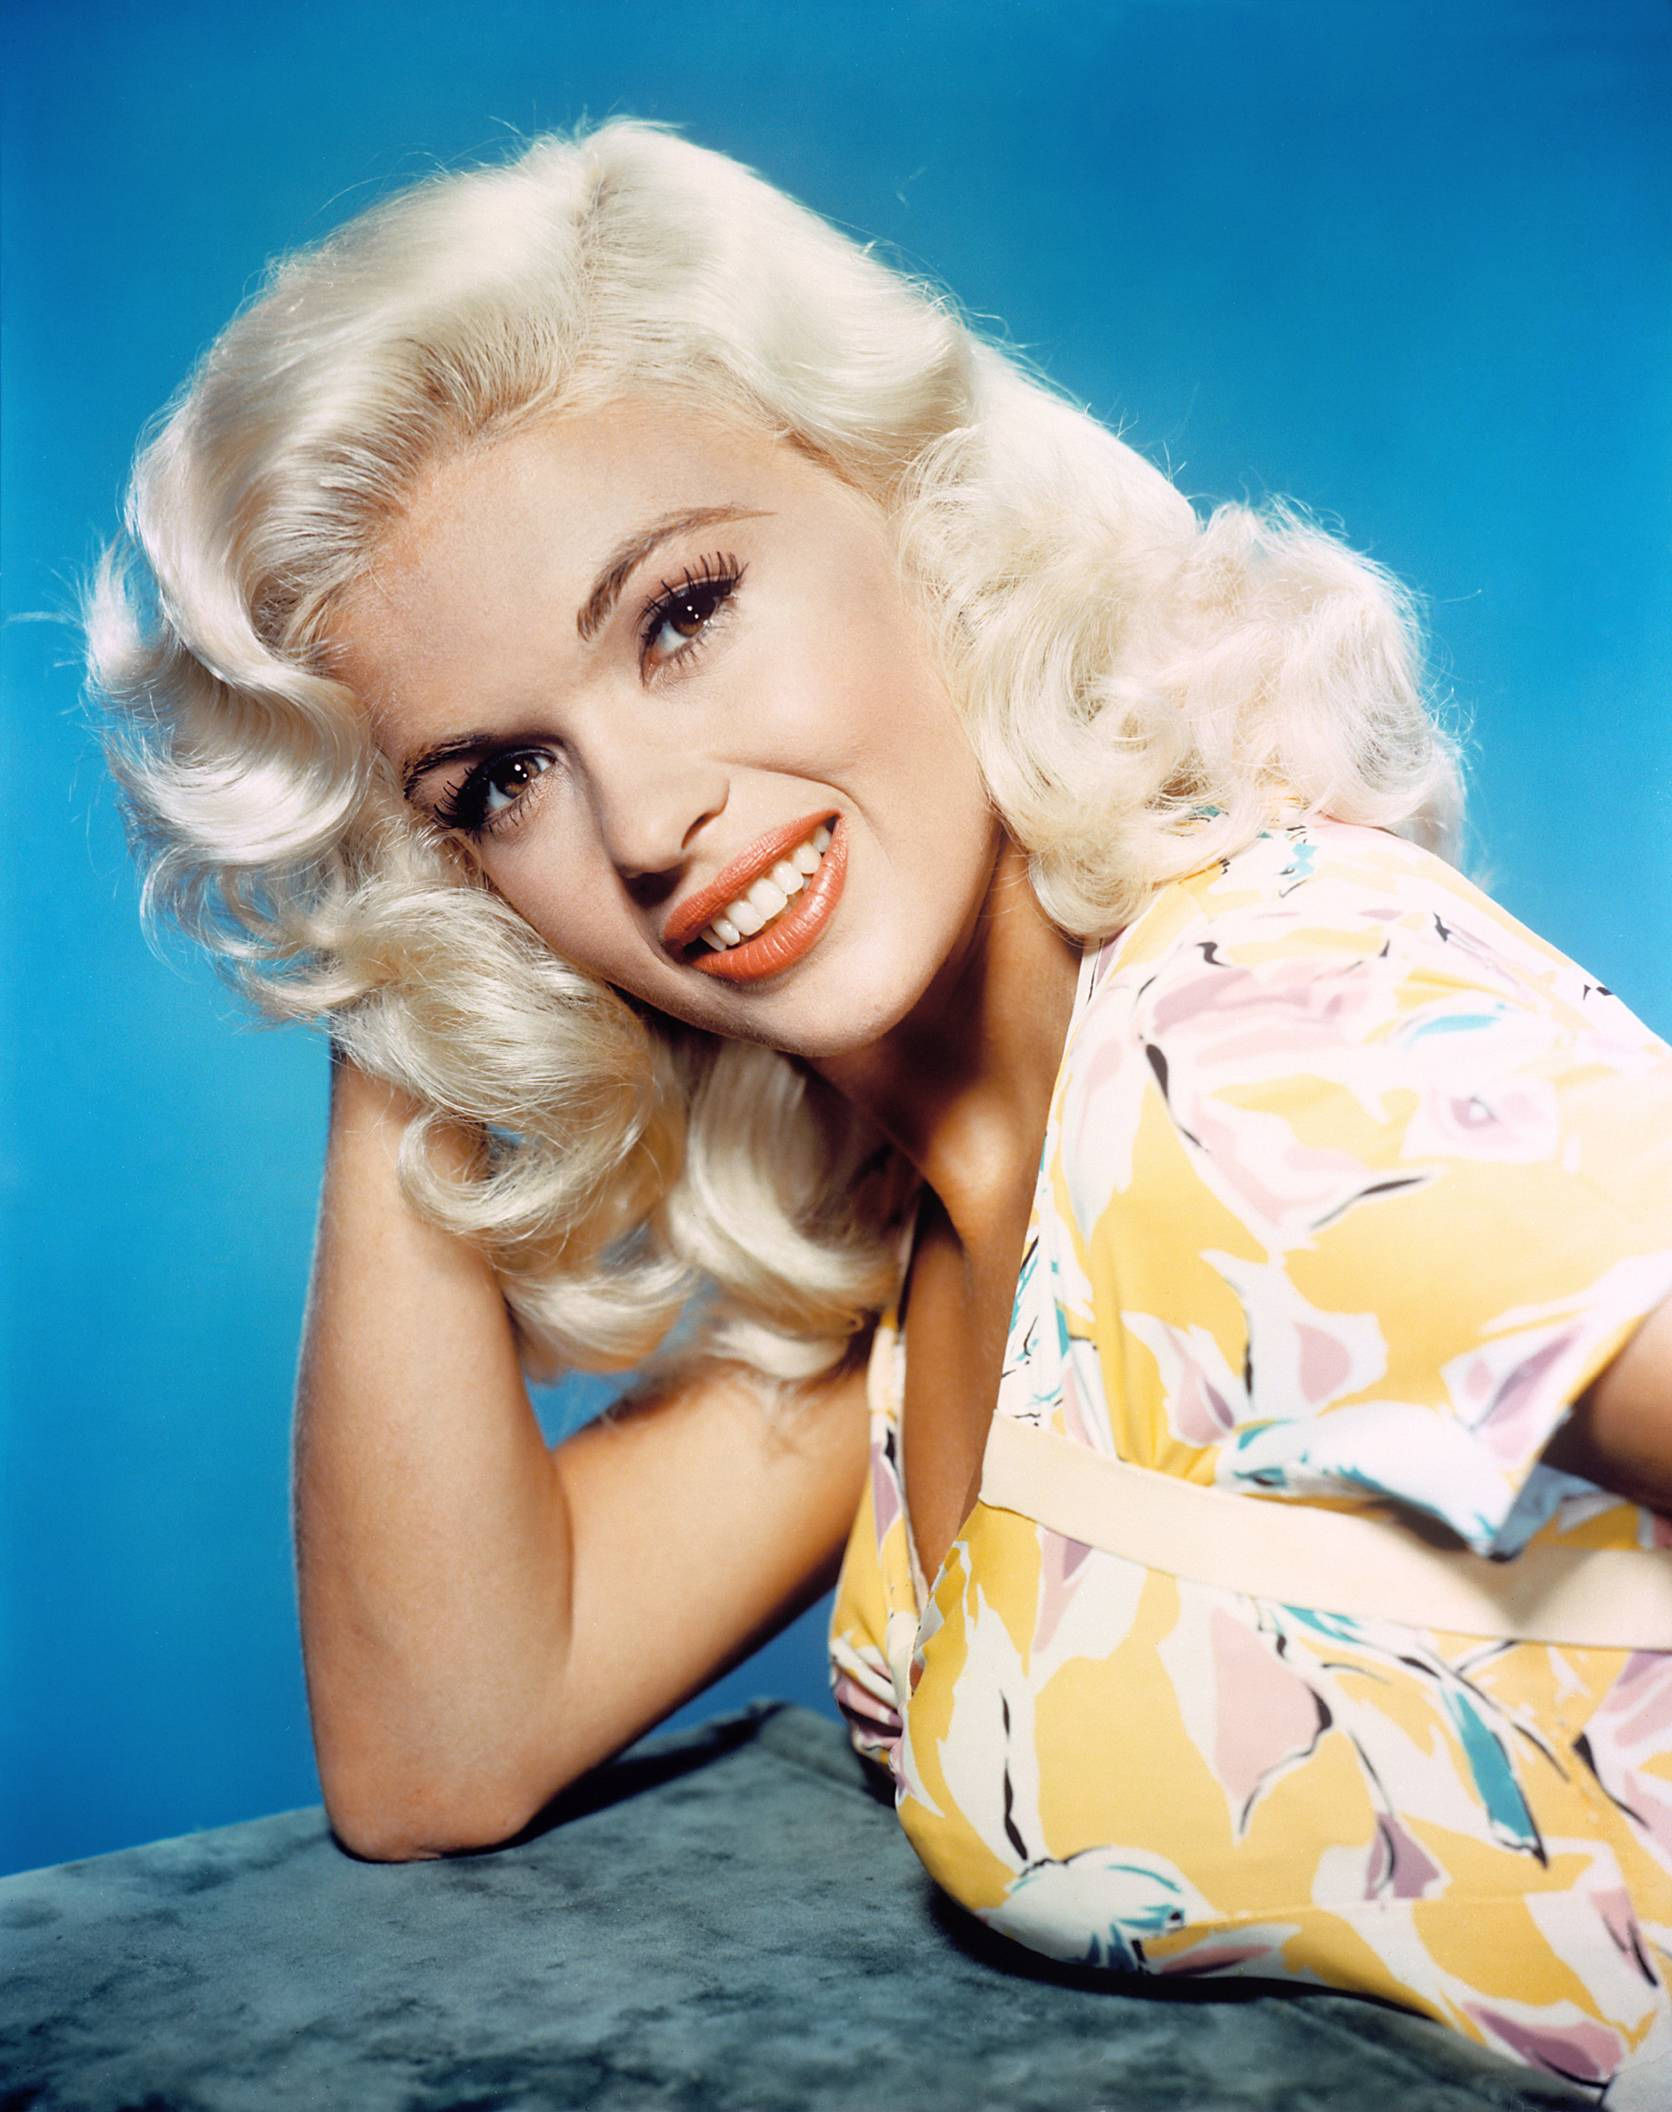 Jayne Mansfield cup size